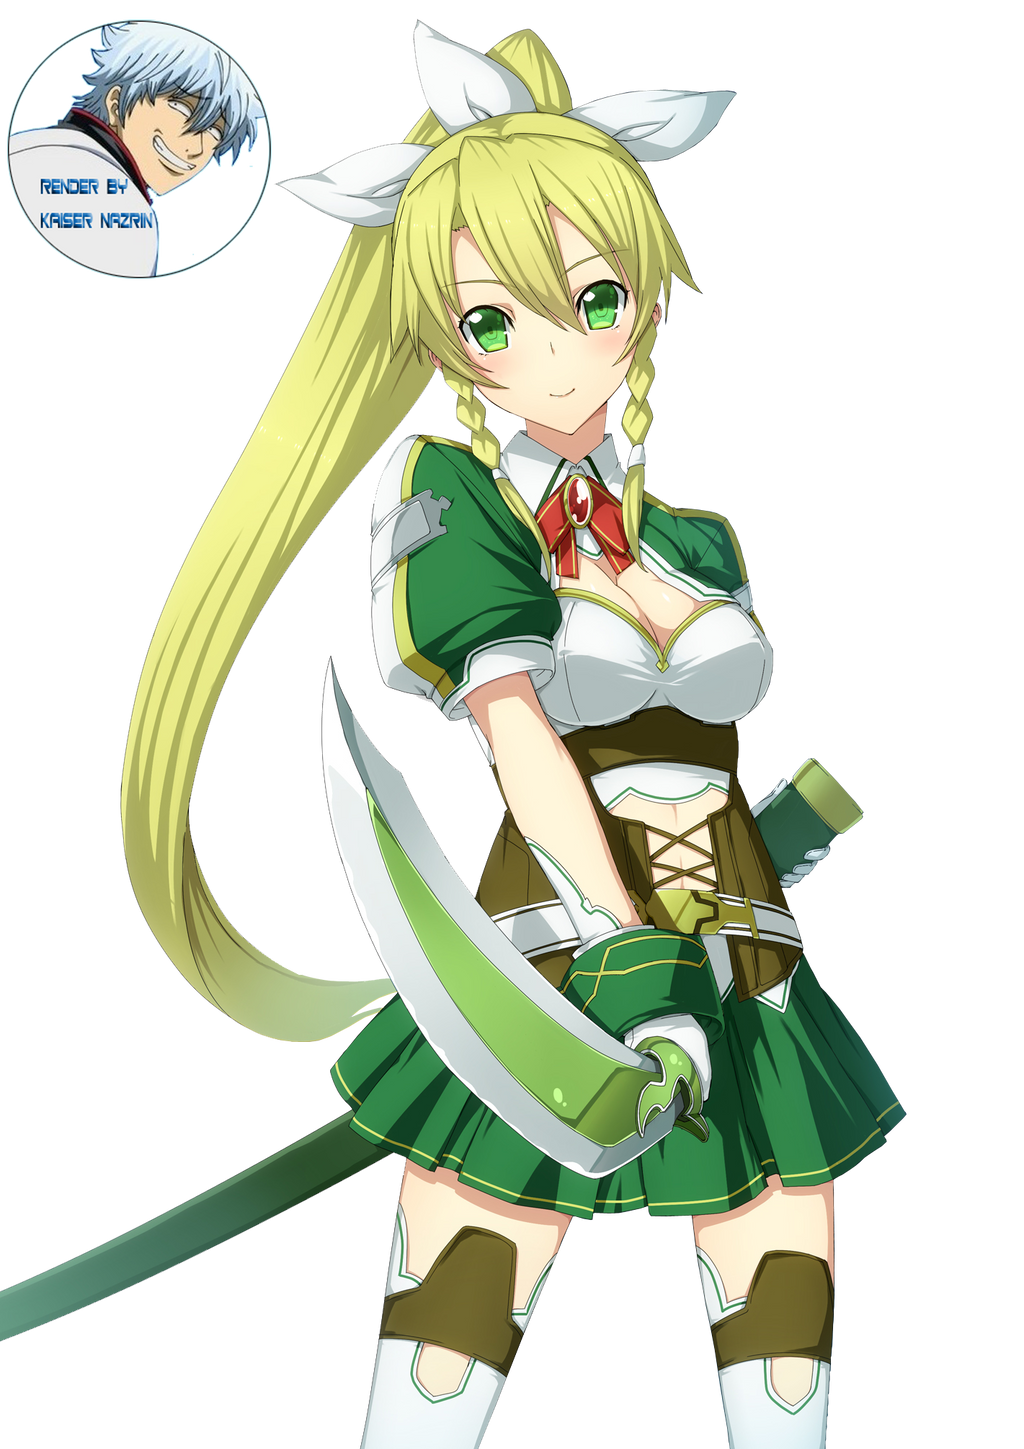 Sword Art Online - Lyfa Render 3 by KaiserNazrin